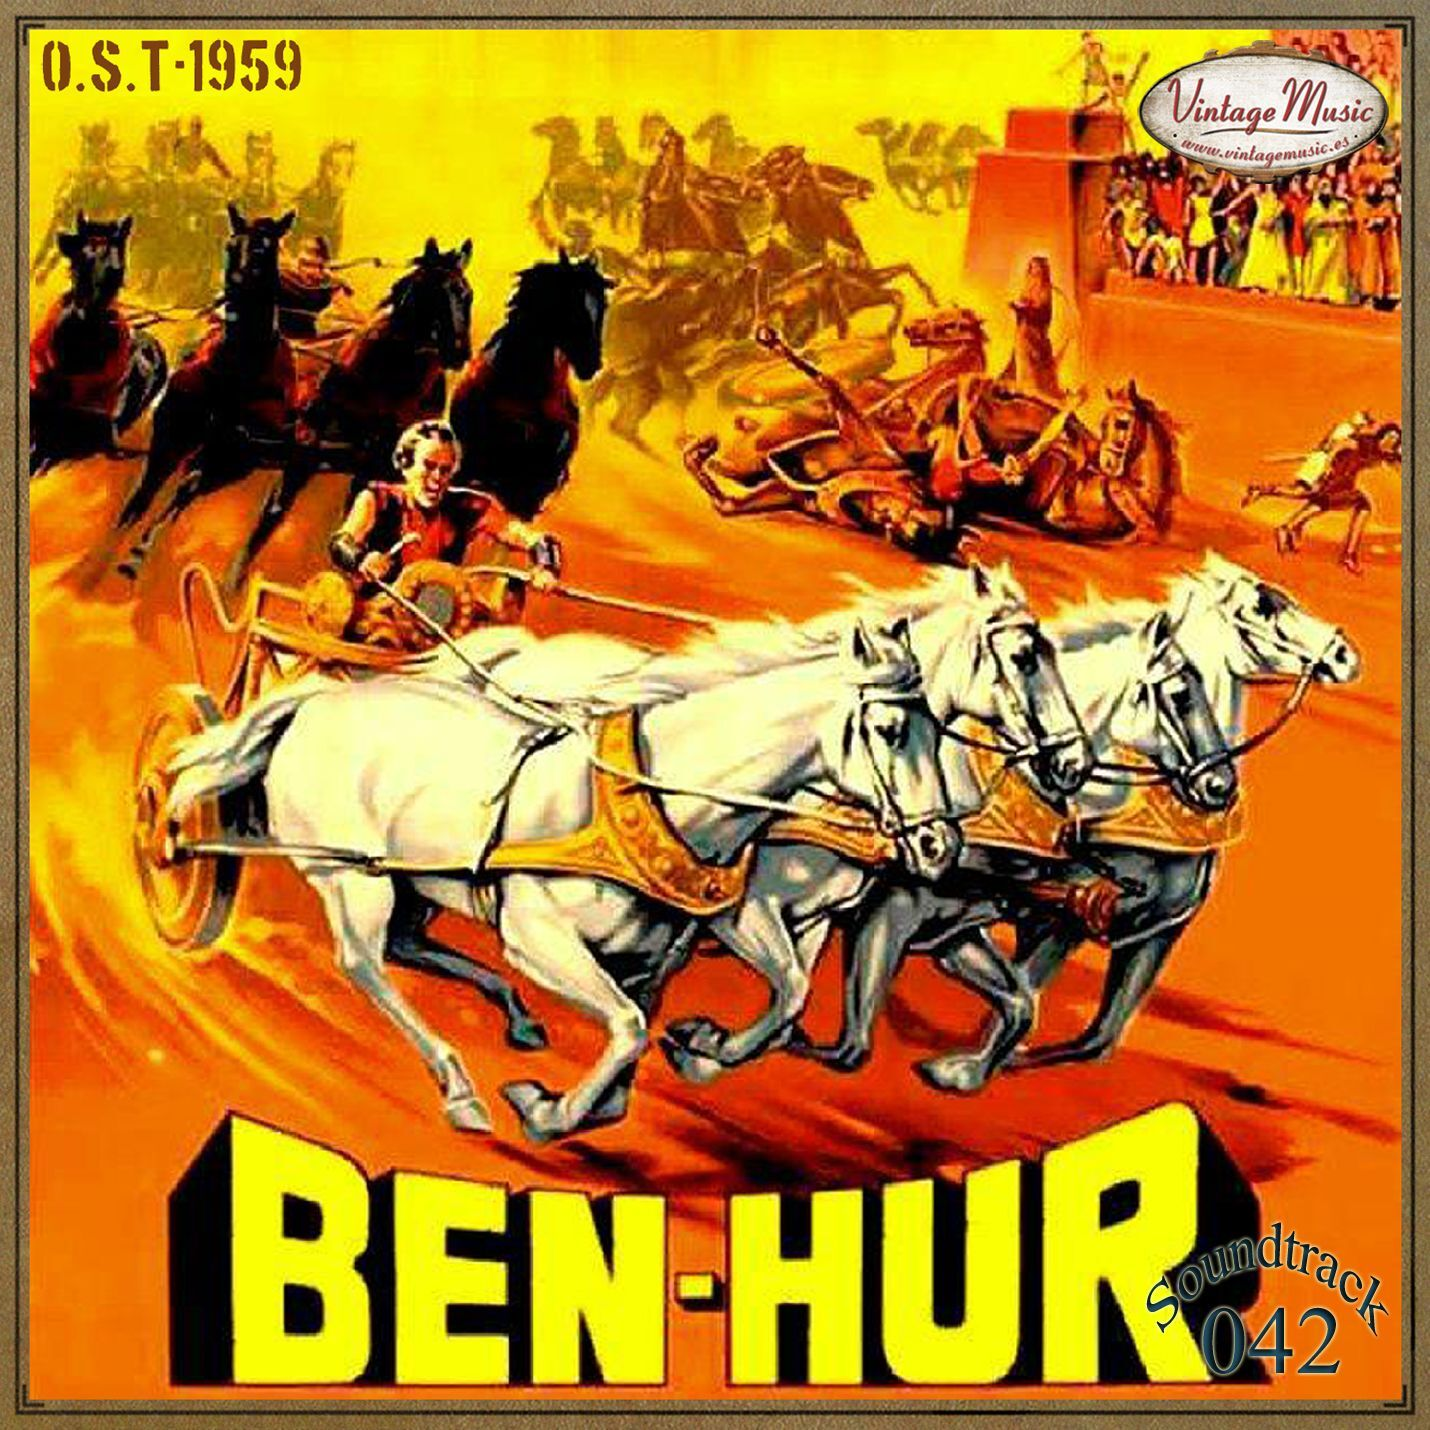 ben hur singles The tale of ben-hur comes to live for today's generation this epic tale of betrayal, forgiveness, and redemption will be available on dvd and blu-ray.